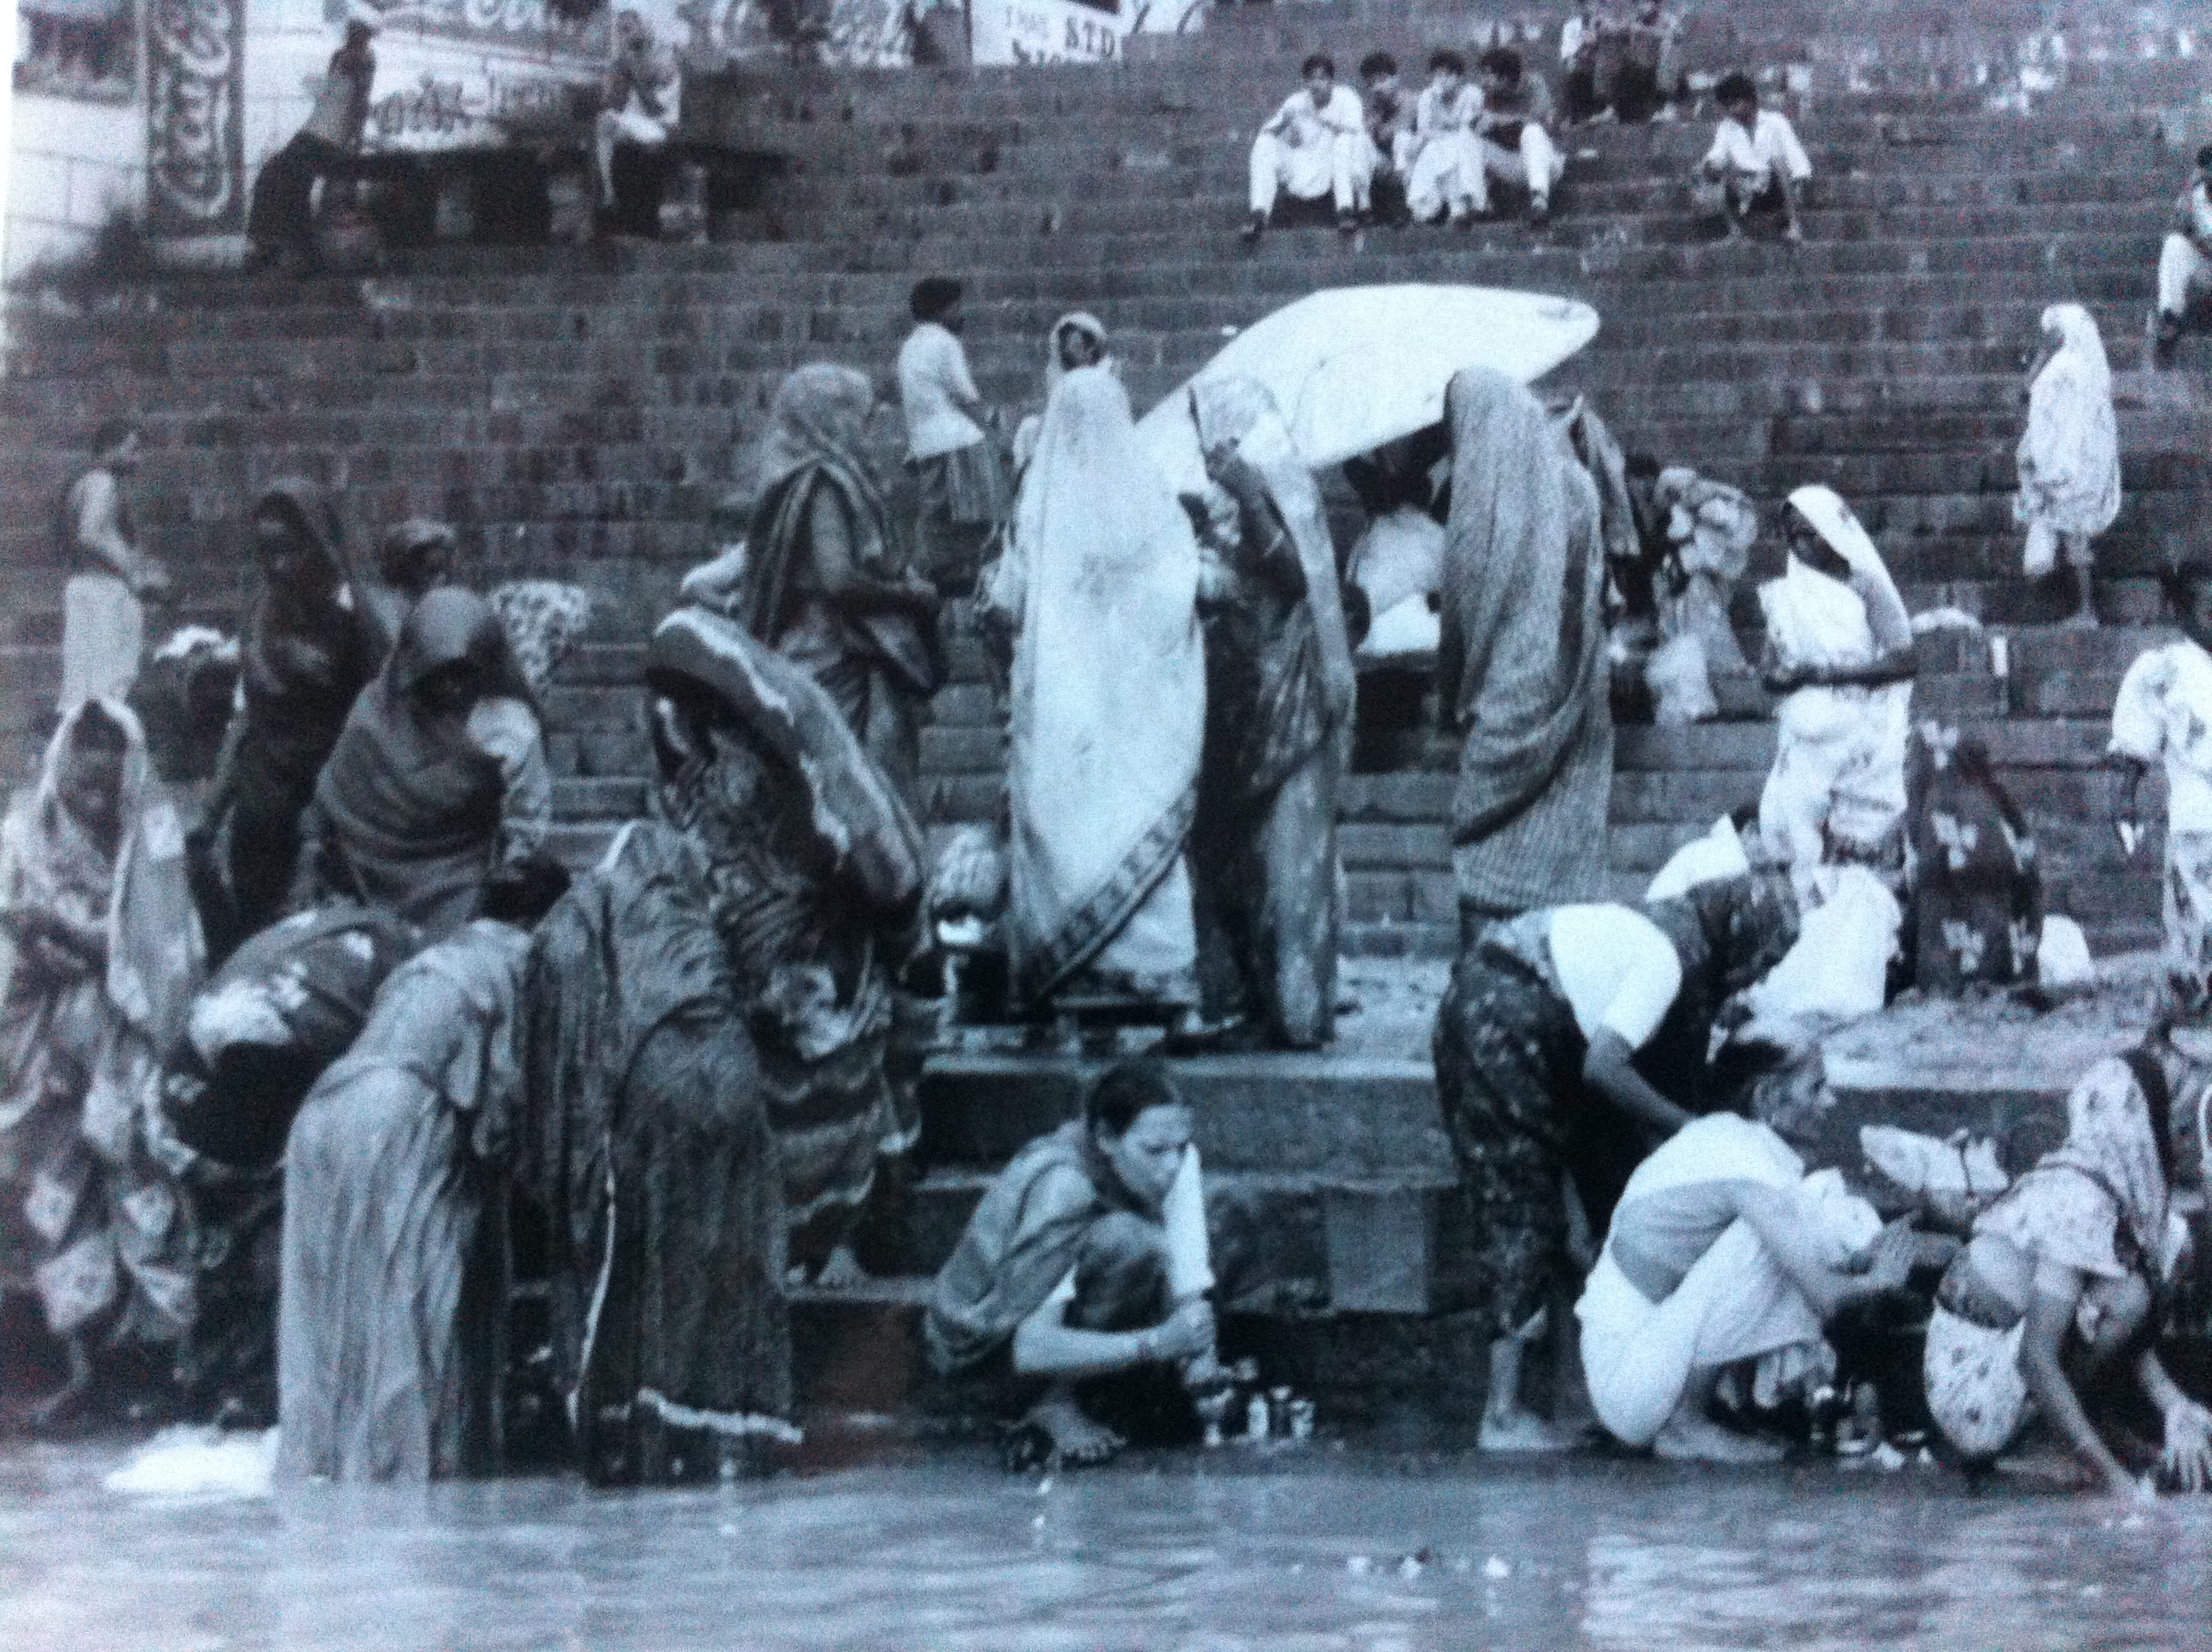 Women Washing on the Ghats in Banaras (Varanasi), India